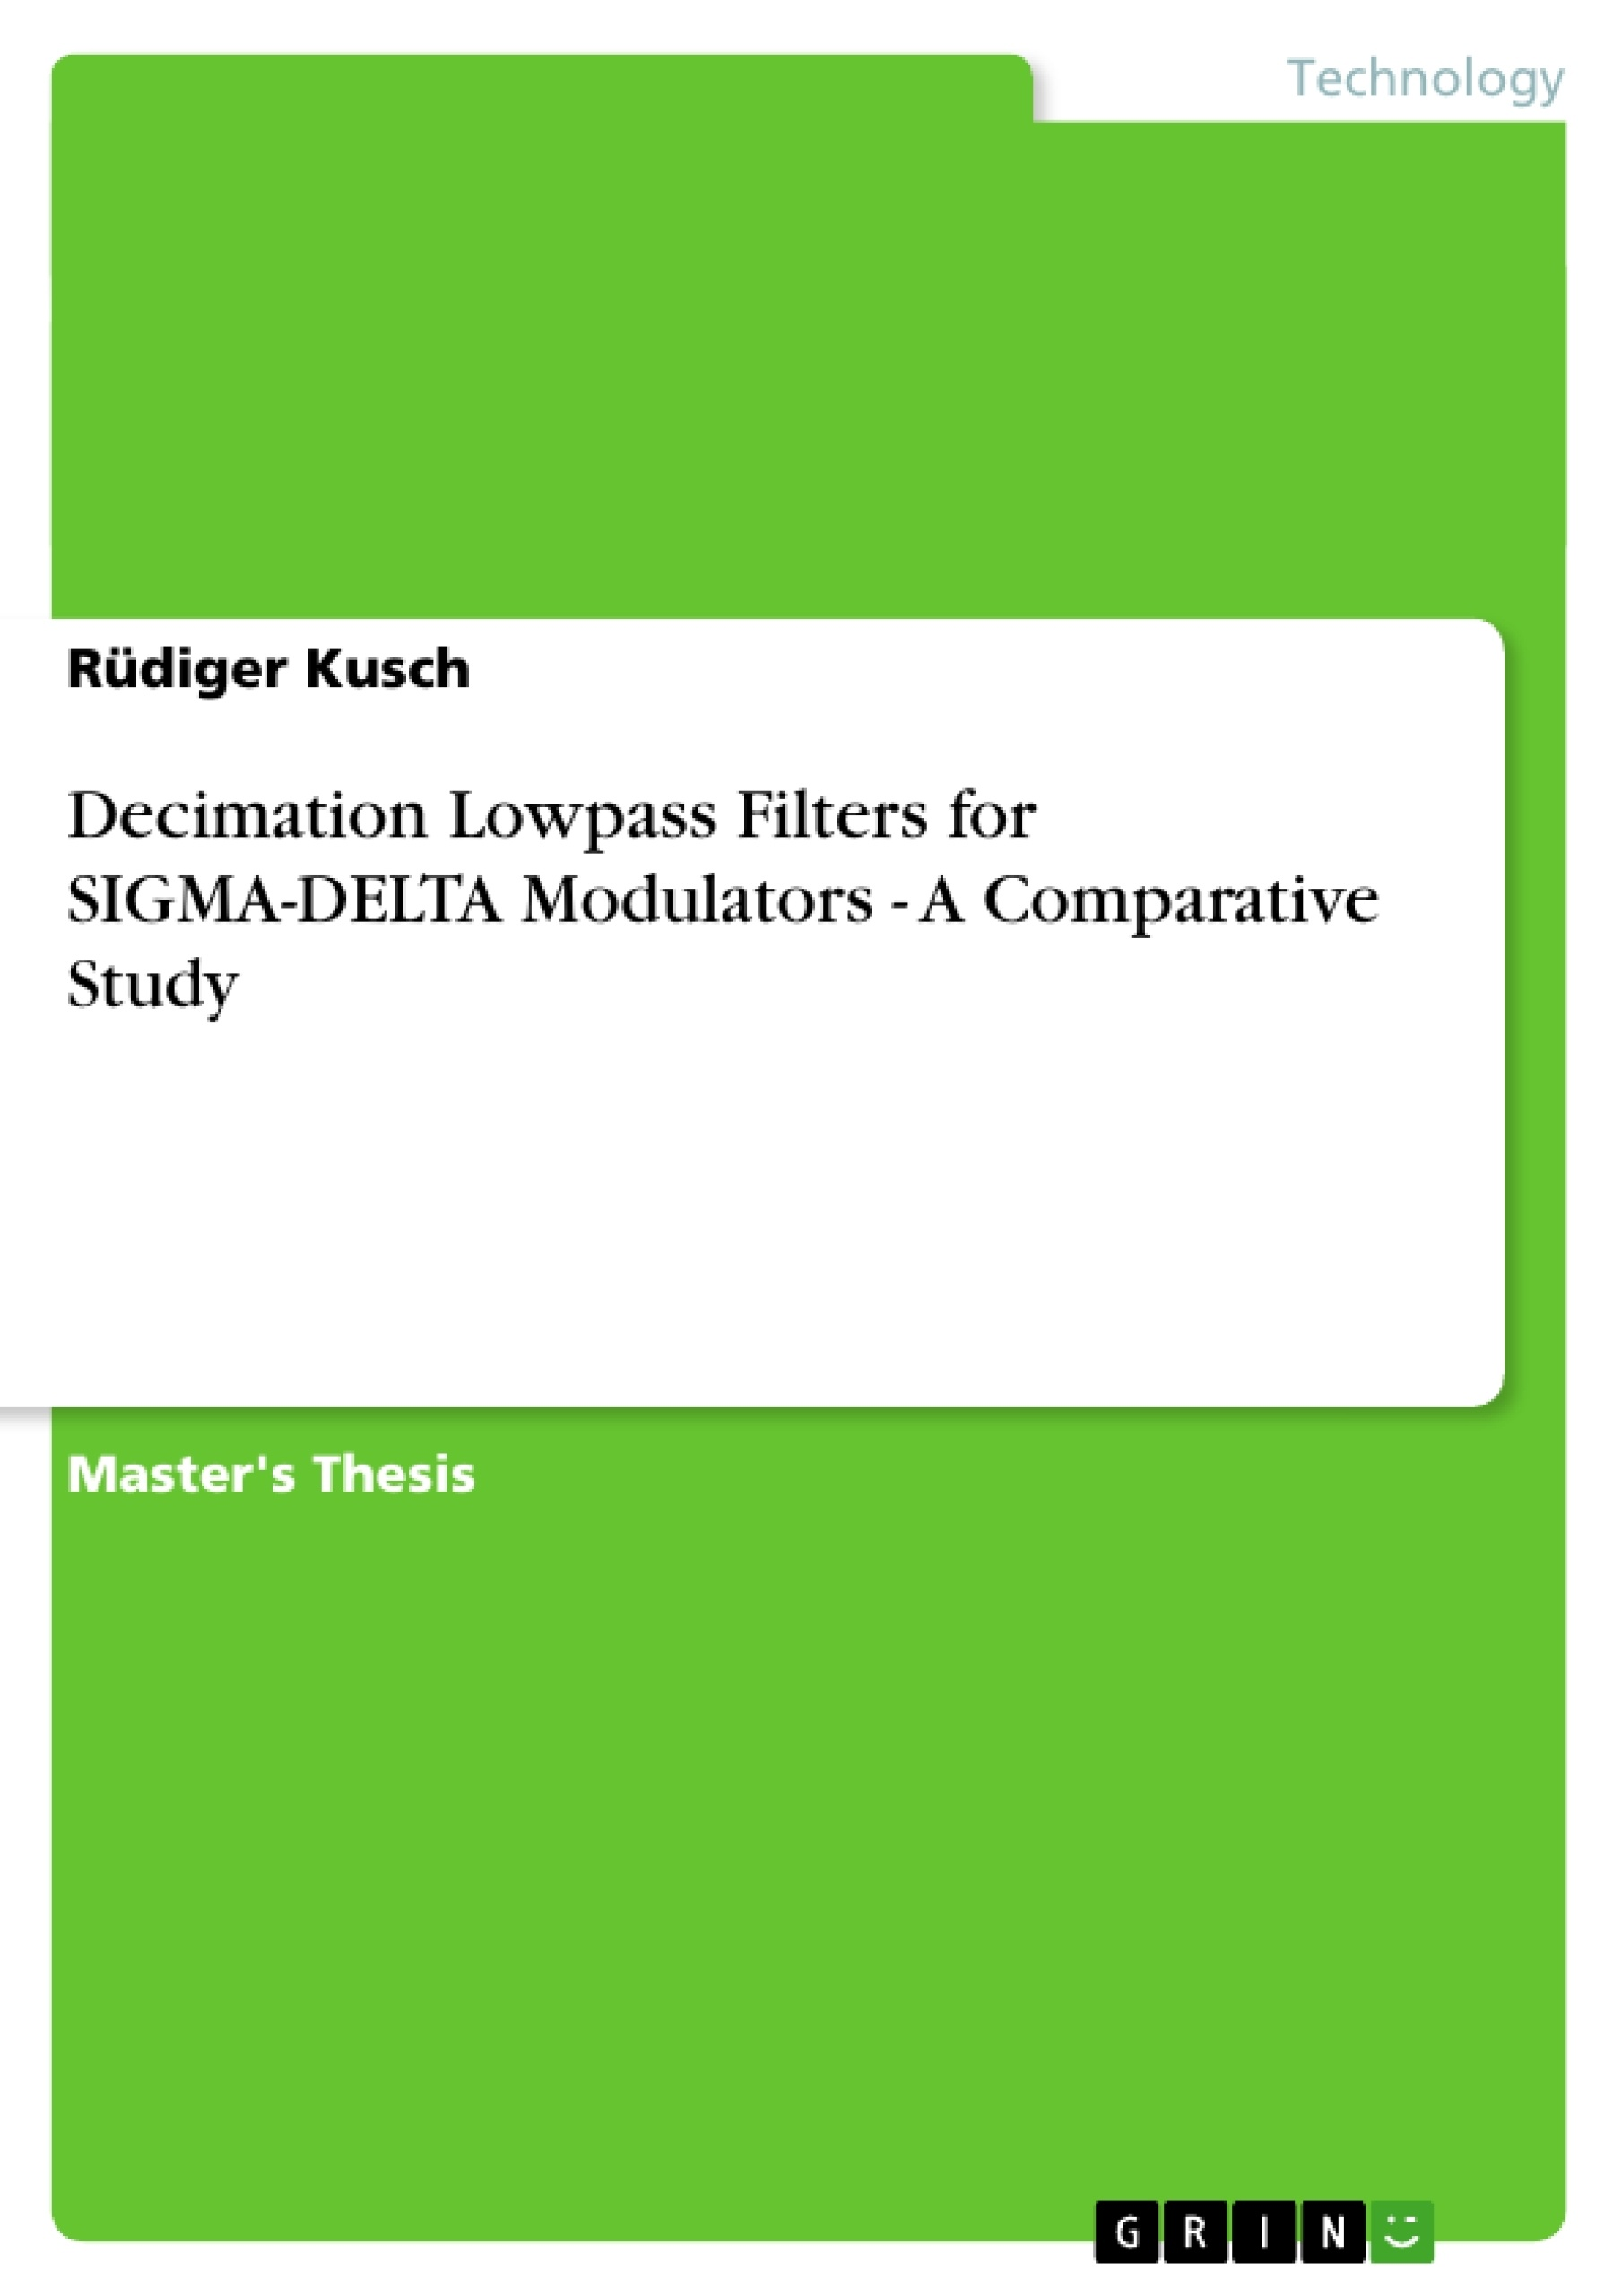 bachelor thesis six sigma Supplementary notes the views expressed in this thesis are those of the  author and do not reflect the official policy or  processing method at nps using  the lean six sigma methodology 14  bs, grand canyon university, 1998.